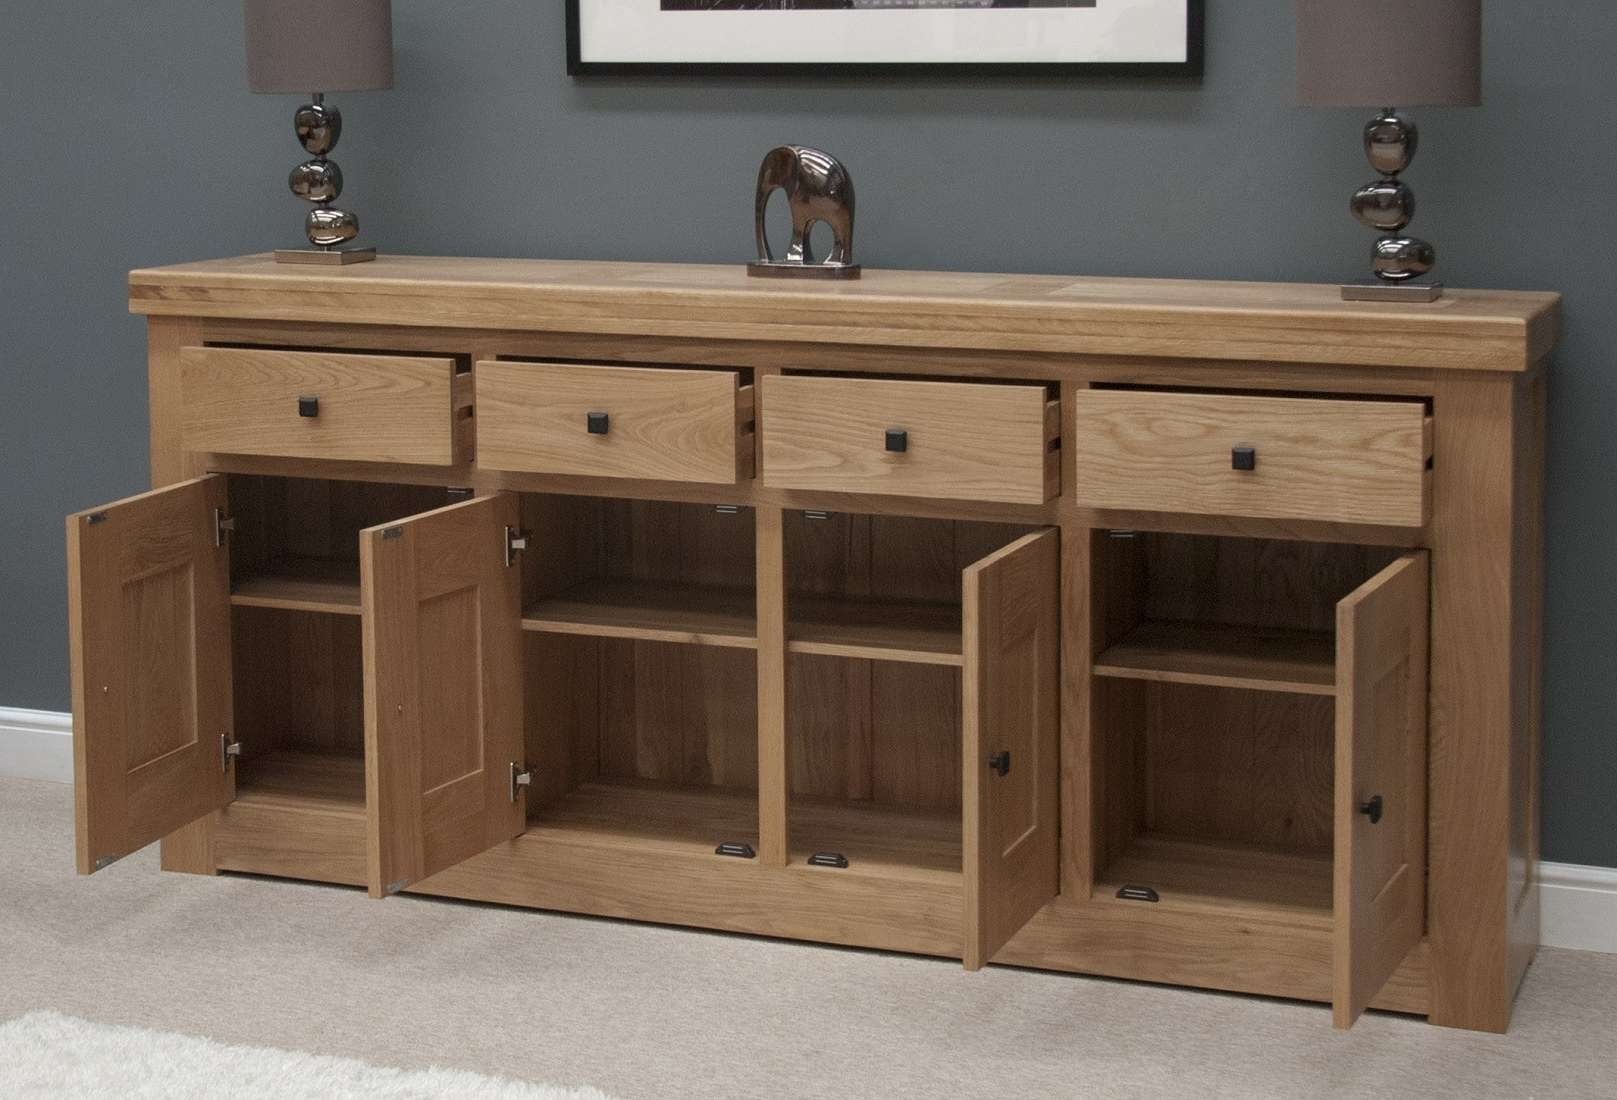 French Bordeaux Oak Extra Large 4 Door Sideboard | Oak Furniture Uk Intended For Wooden Sideboards (View 7 of 20)